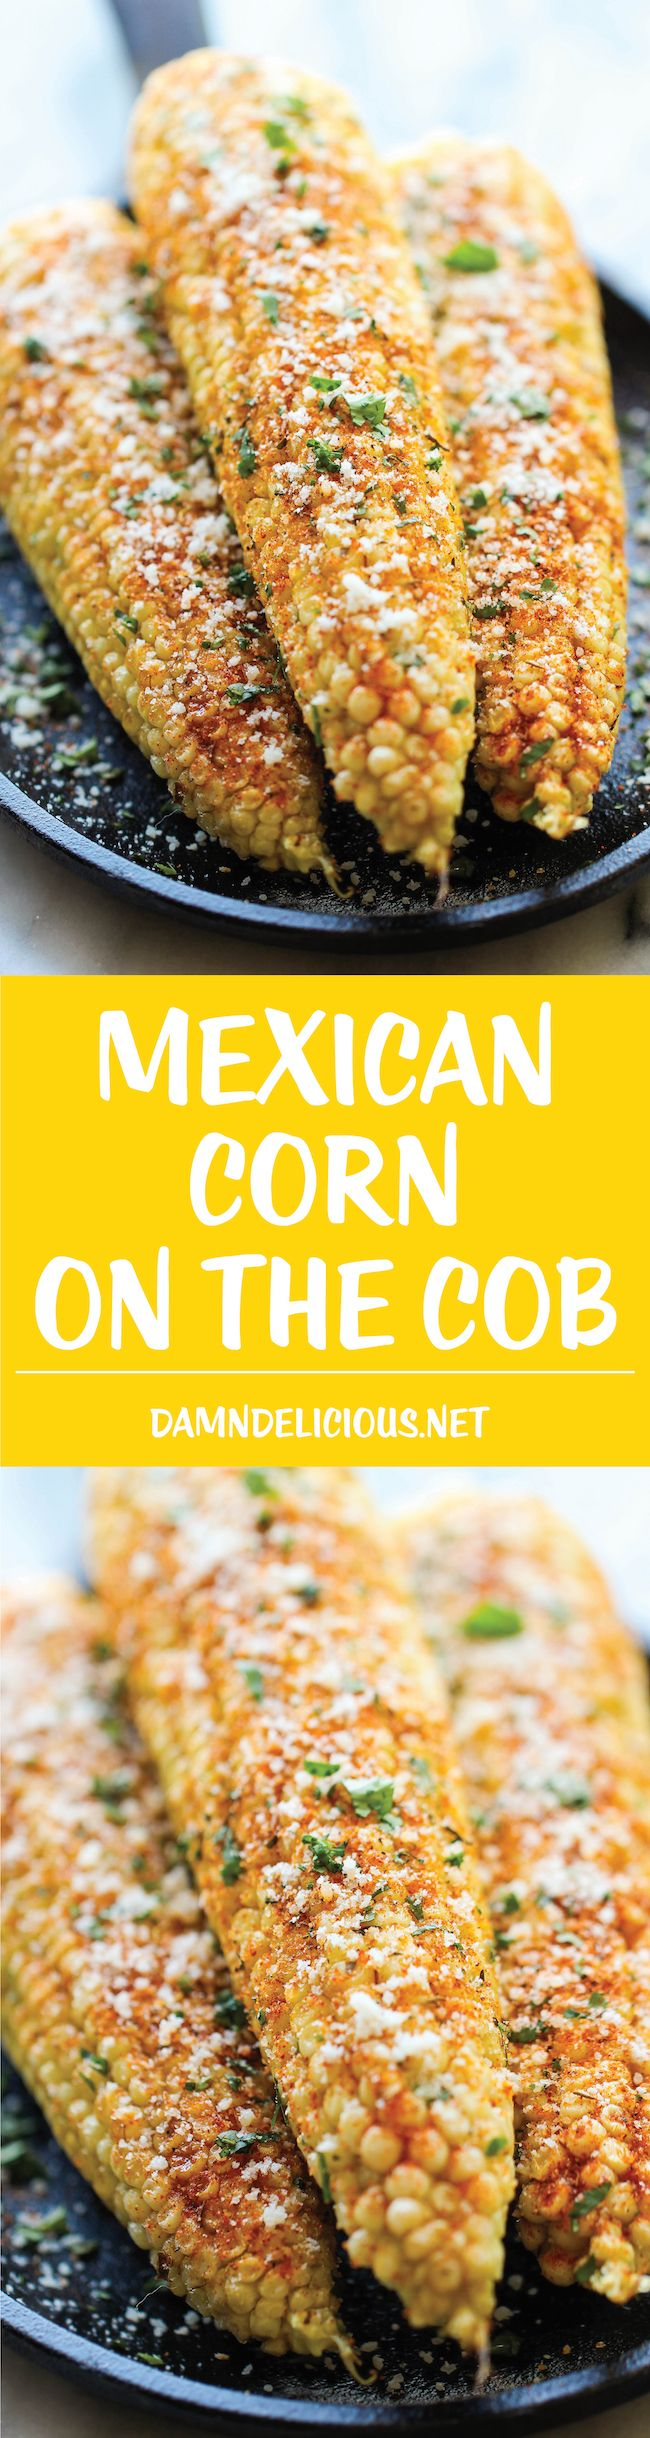 Cob - This is the best way to serve corn, brushed with melted butter ...